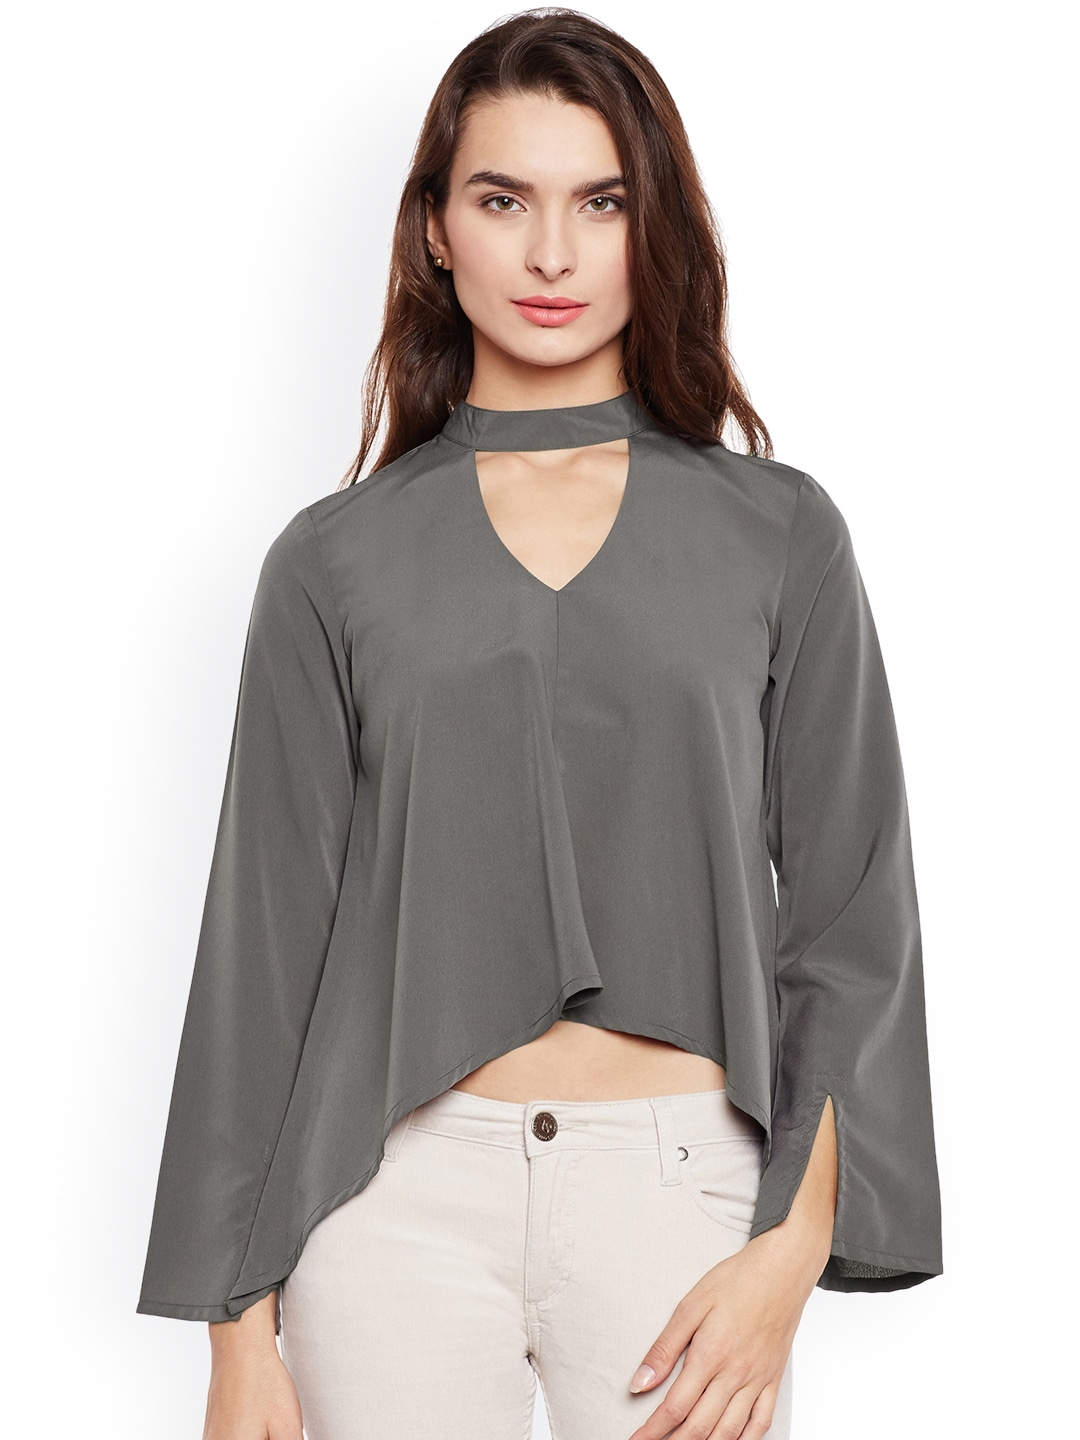 bae92277905c9d Popnetic Online Store - Buy Popnetic Products Online in India - Myntra